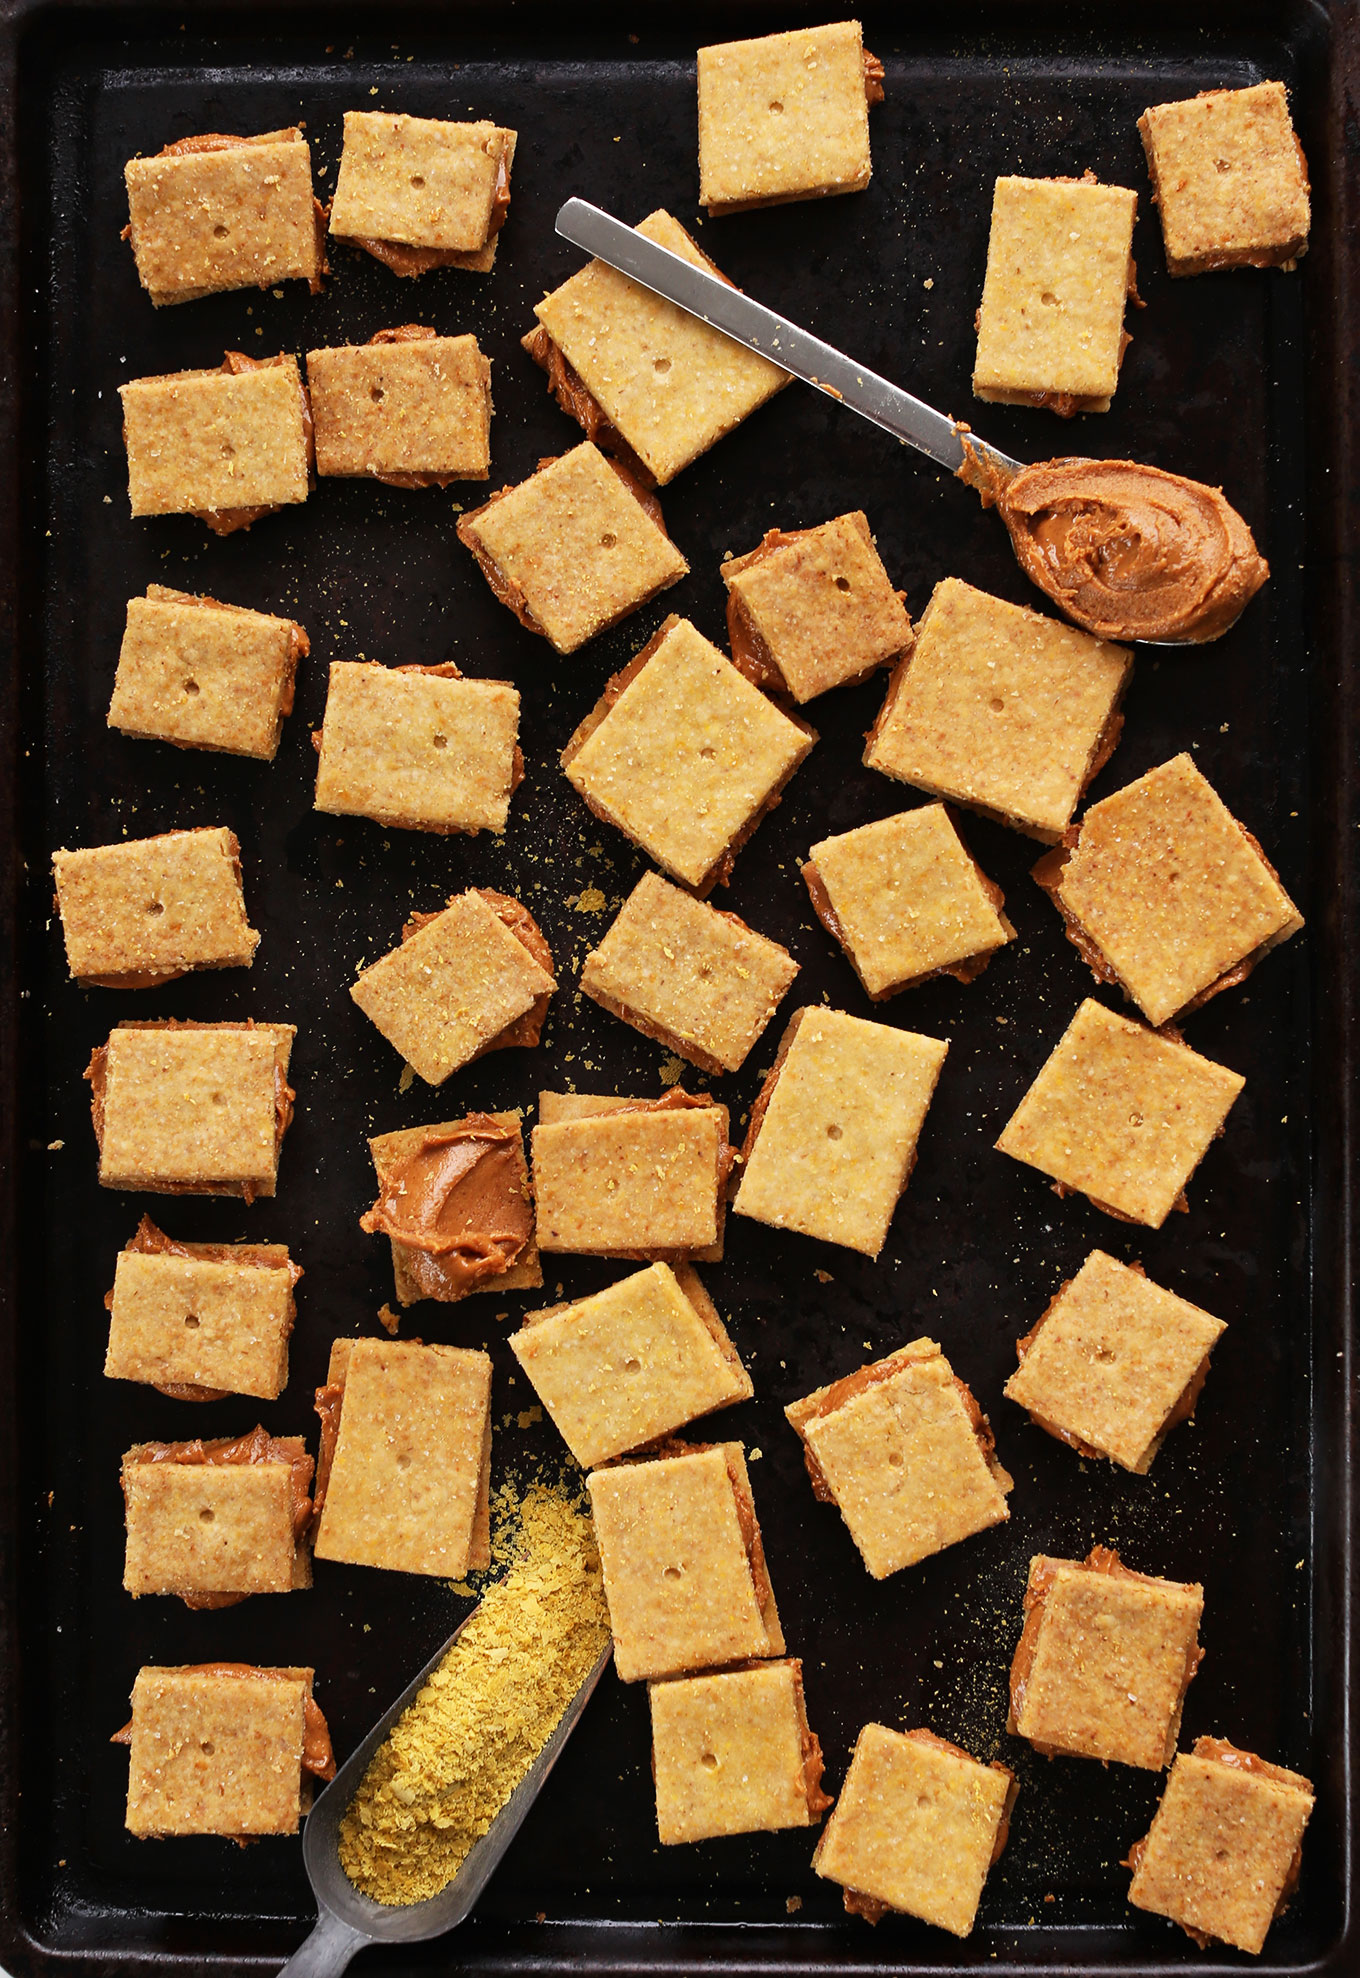 Baking sheet filled with Peanut Butter Cheese Crackers for a healthy gluten-free vegan snack